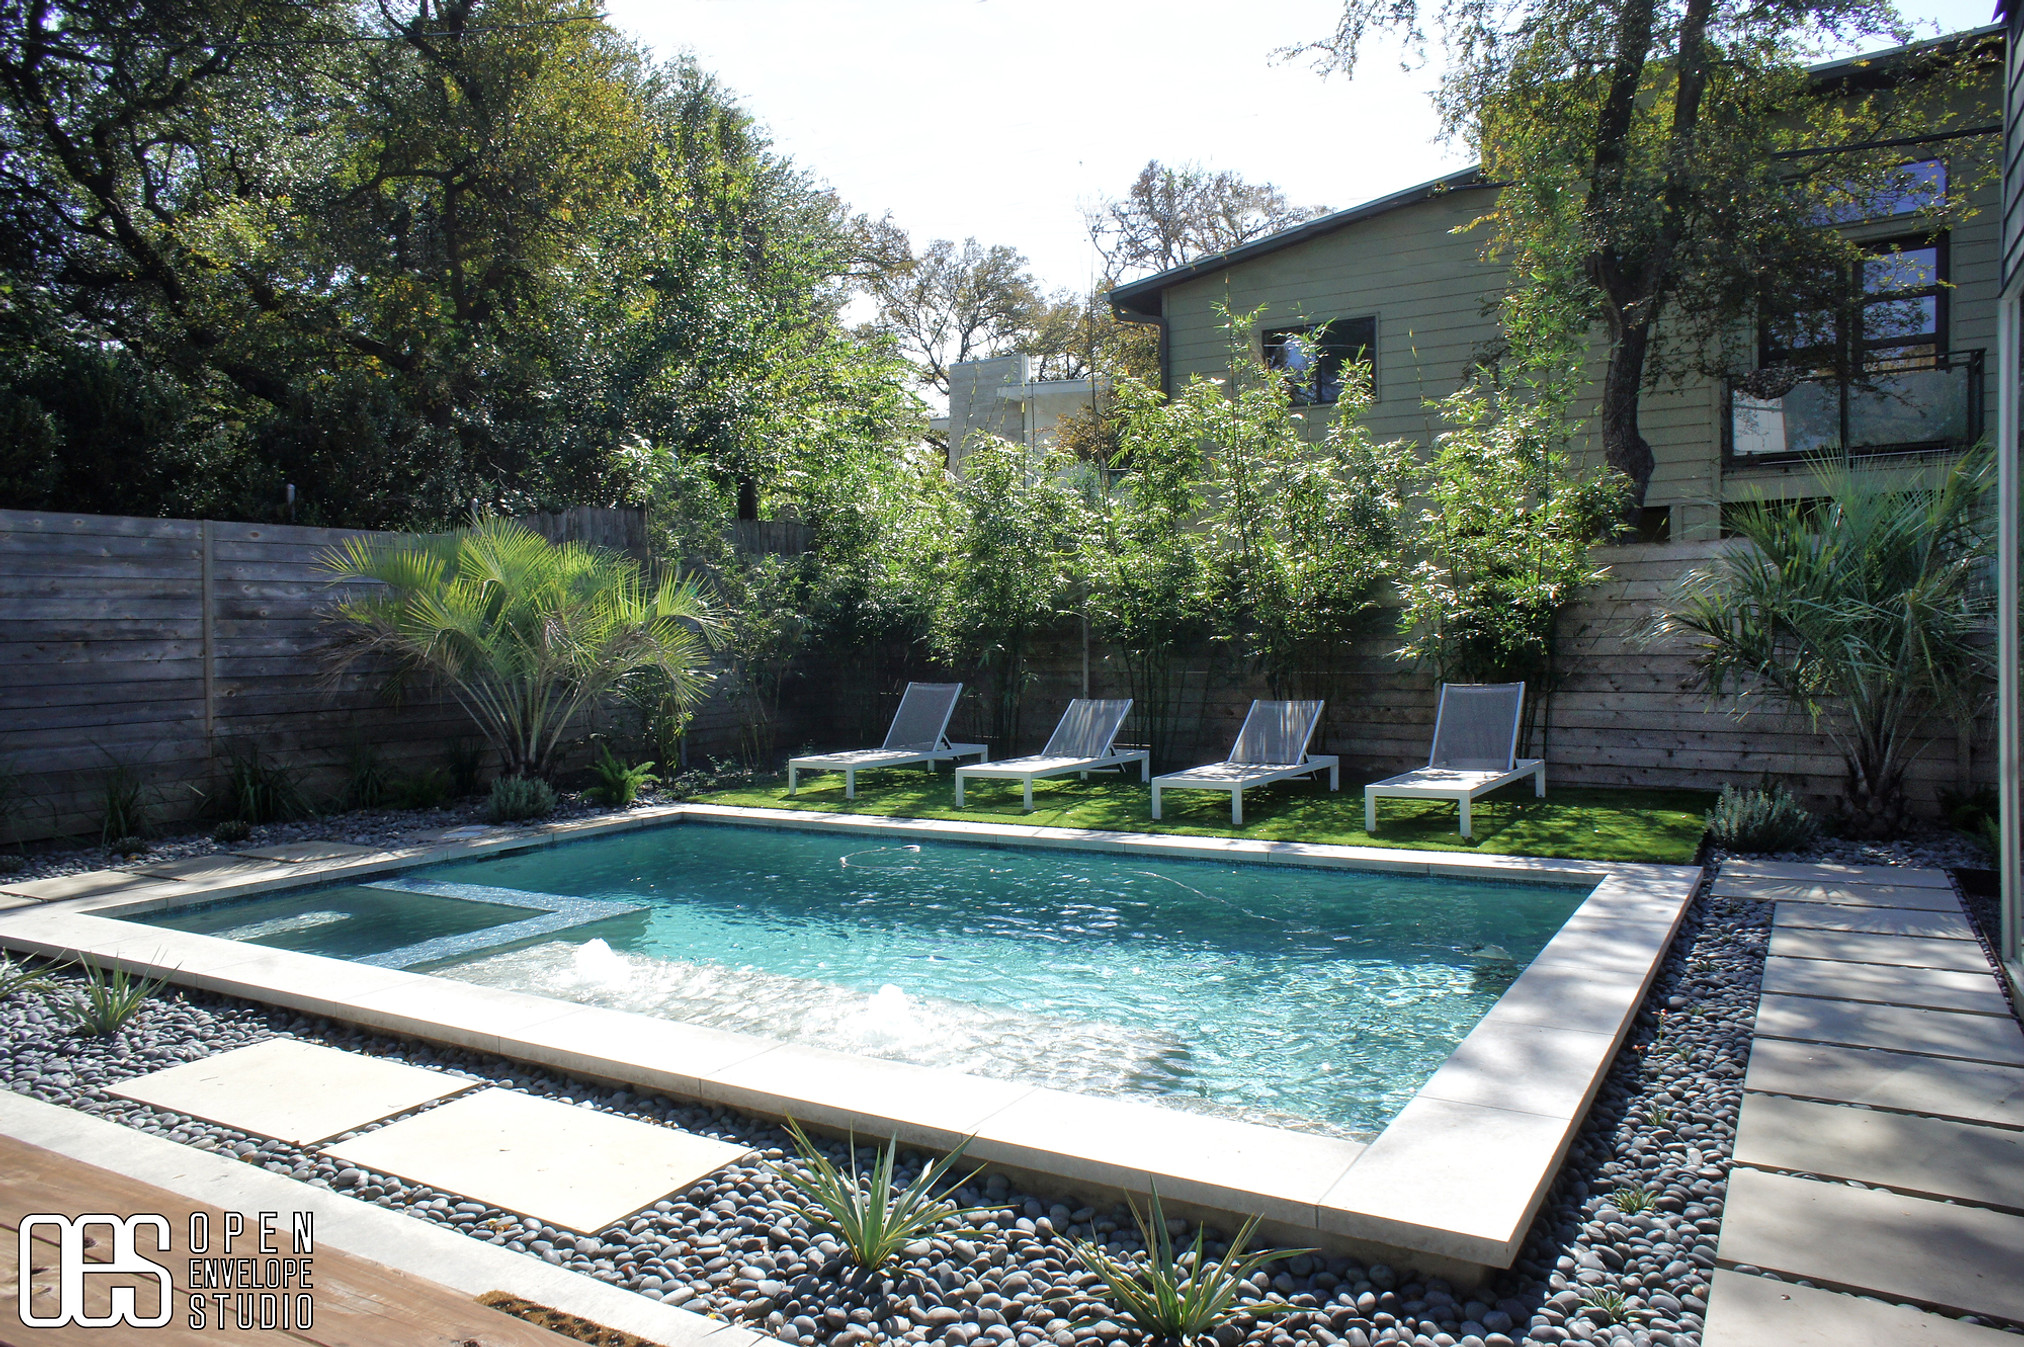 OES   pool installation management, limestone pavers, mexican moon pebbles, artificial turf, clumping bamboo for privacy screening, pindo palm trees, other vegetation